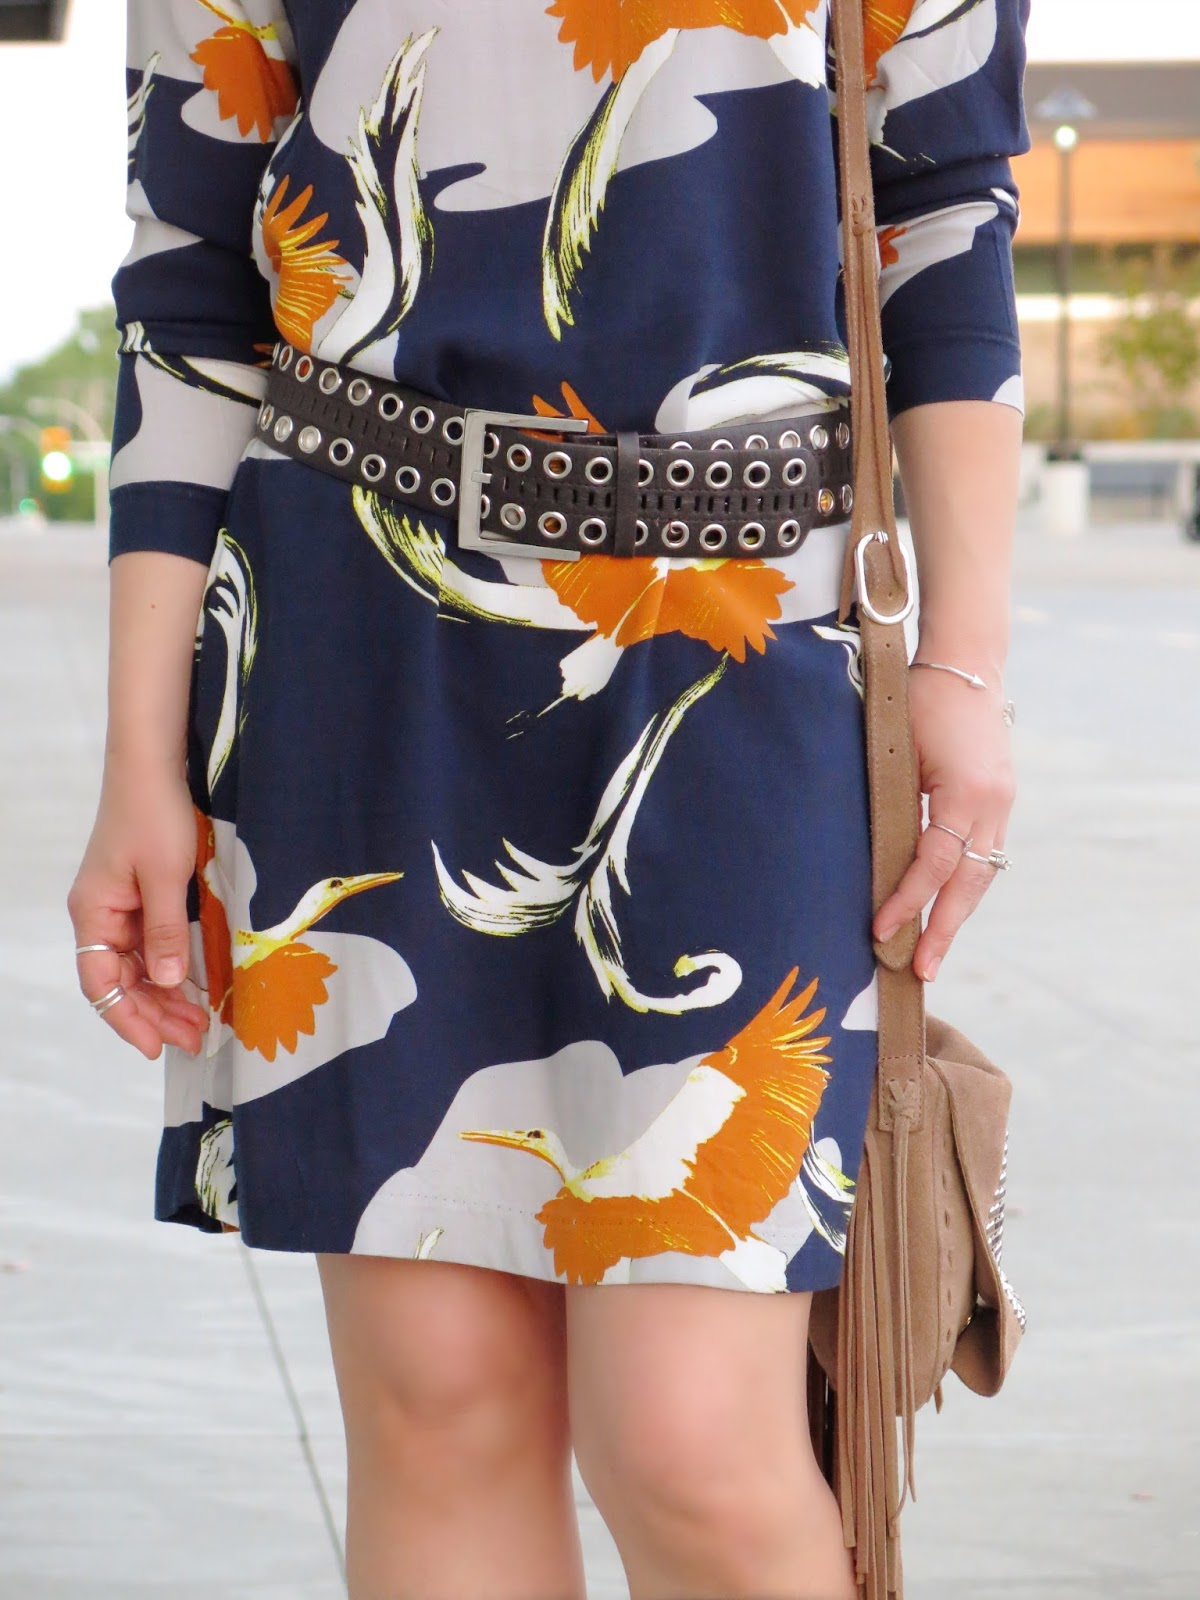 styling a stork-print shift dress with a wide belt and fringy bag